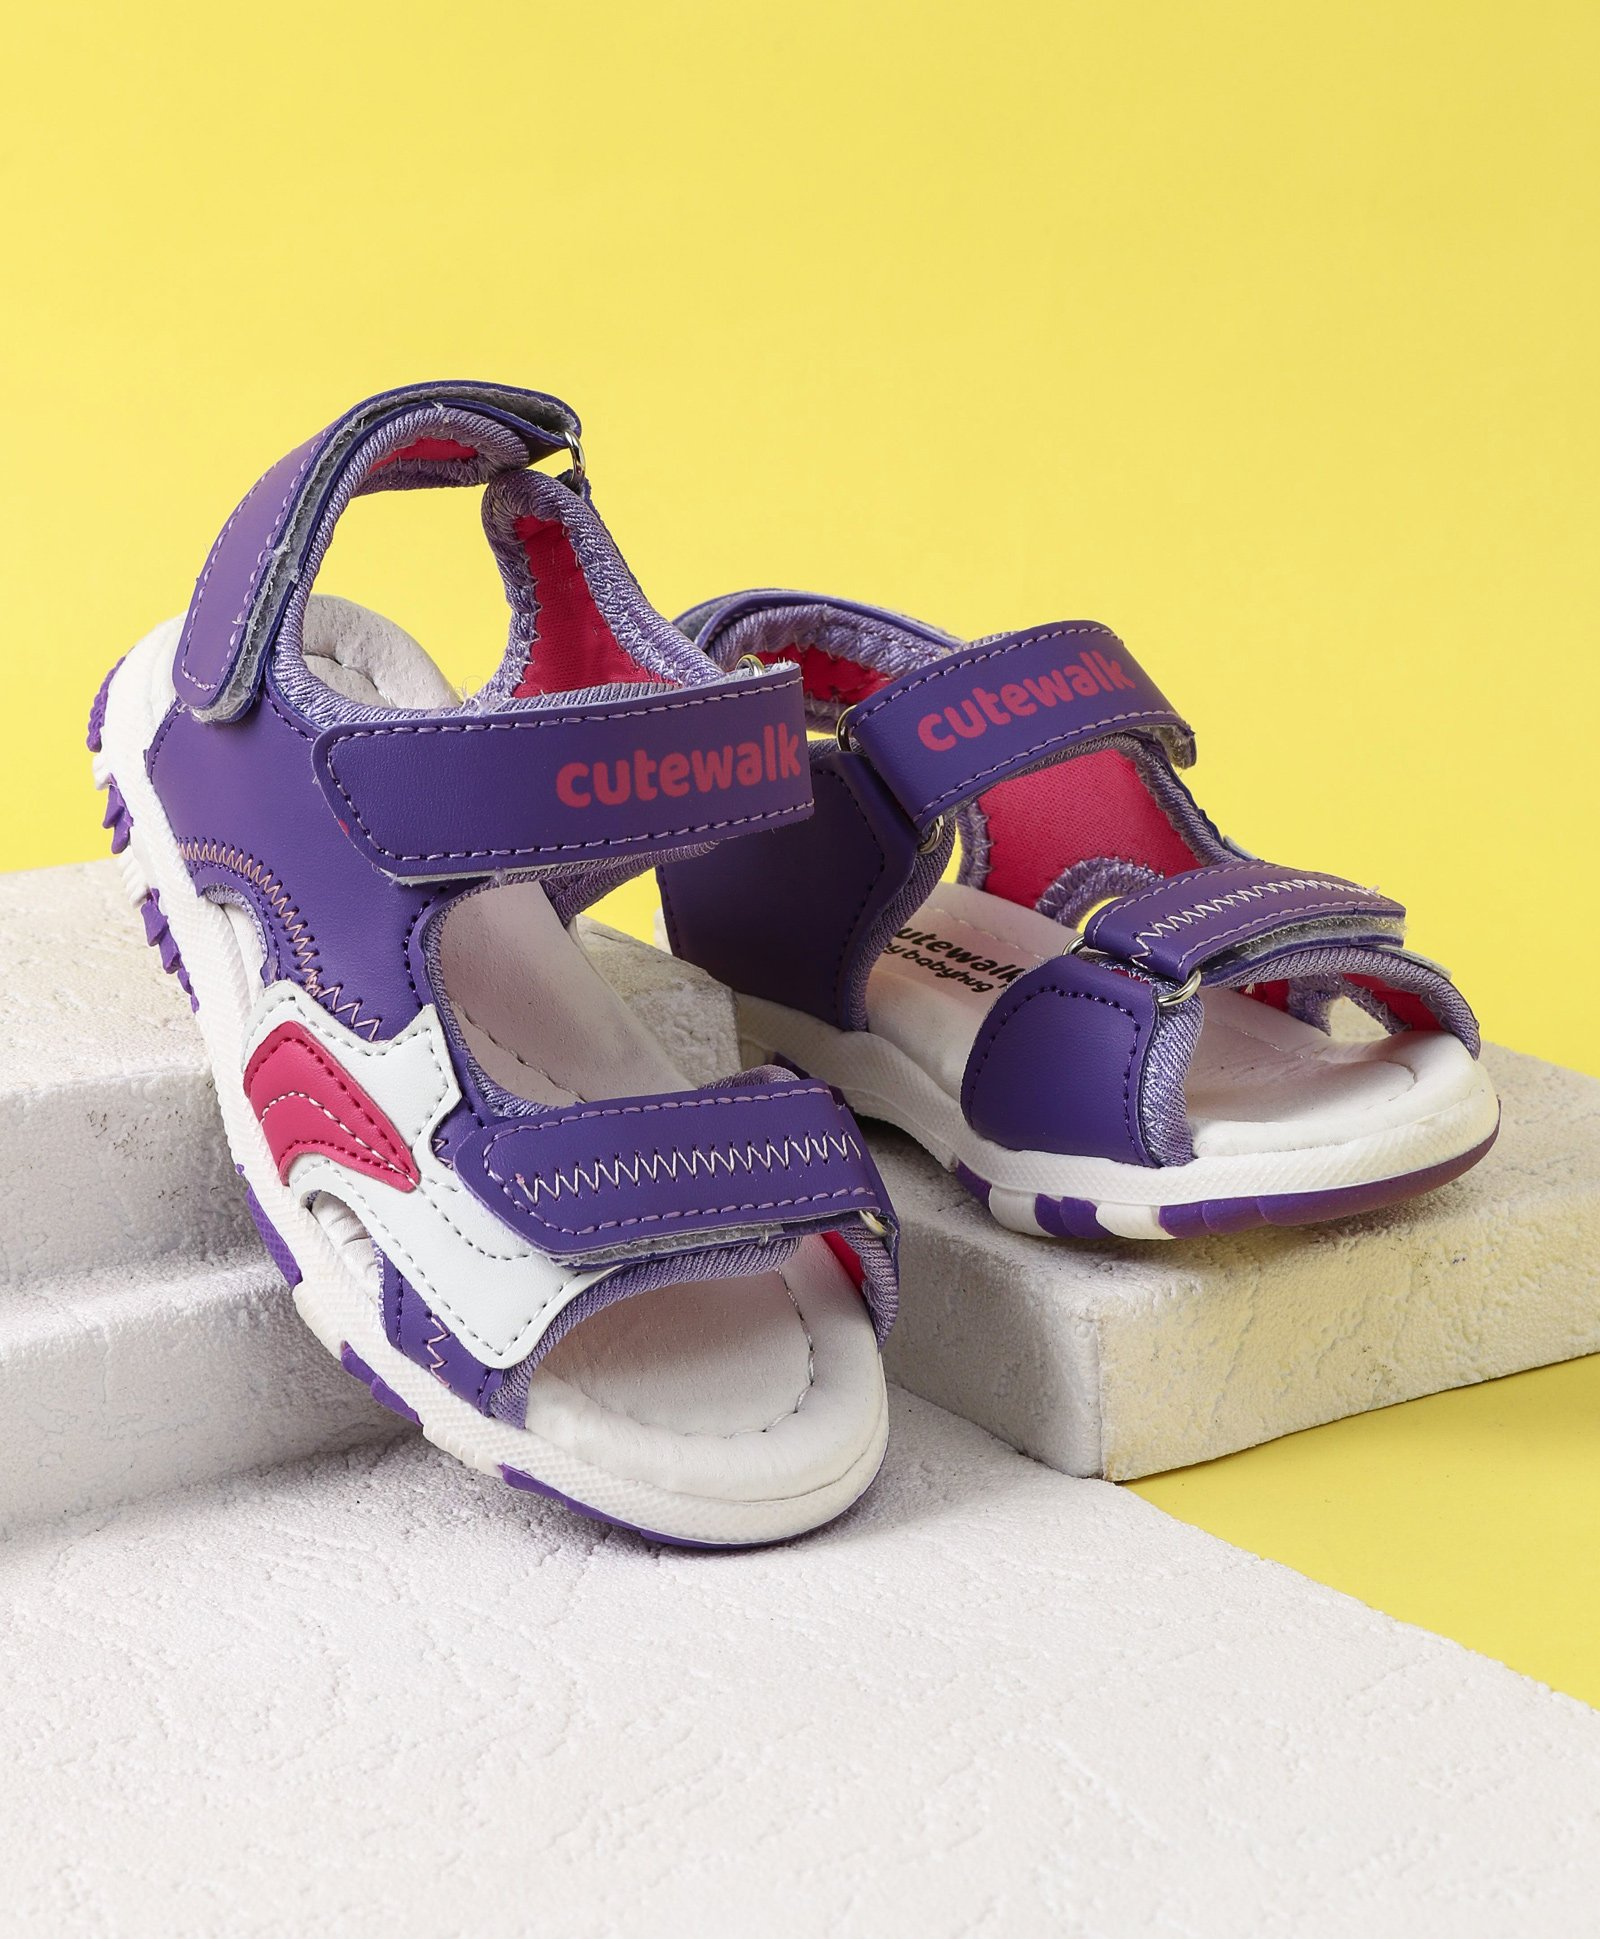 44a79bd8d2fb Buy Cute Walk by Babyhug Sandals With Velcro Closure Purple for ...